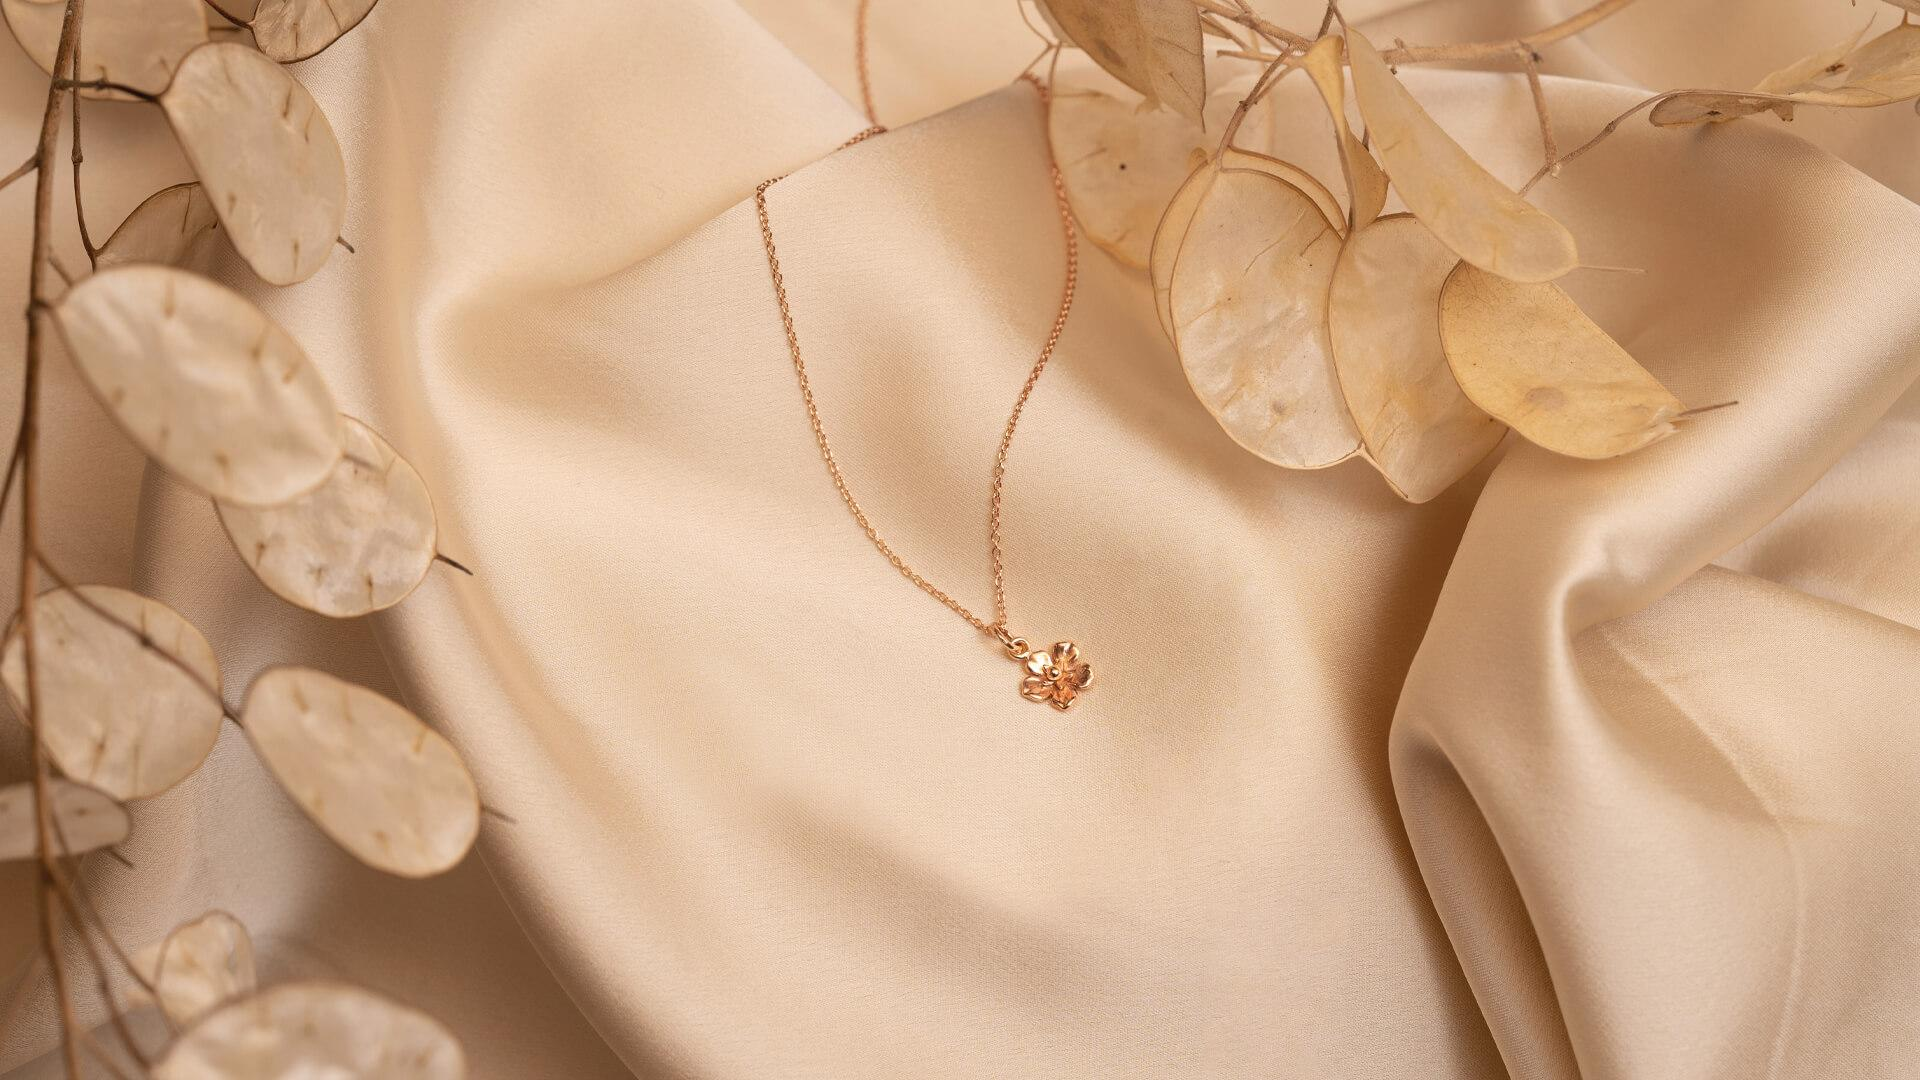 Forget-Me-Not 9ct Rose Gold Necklace made by Winter in July